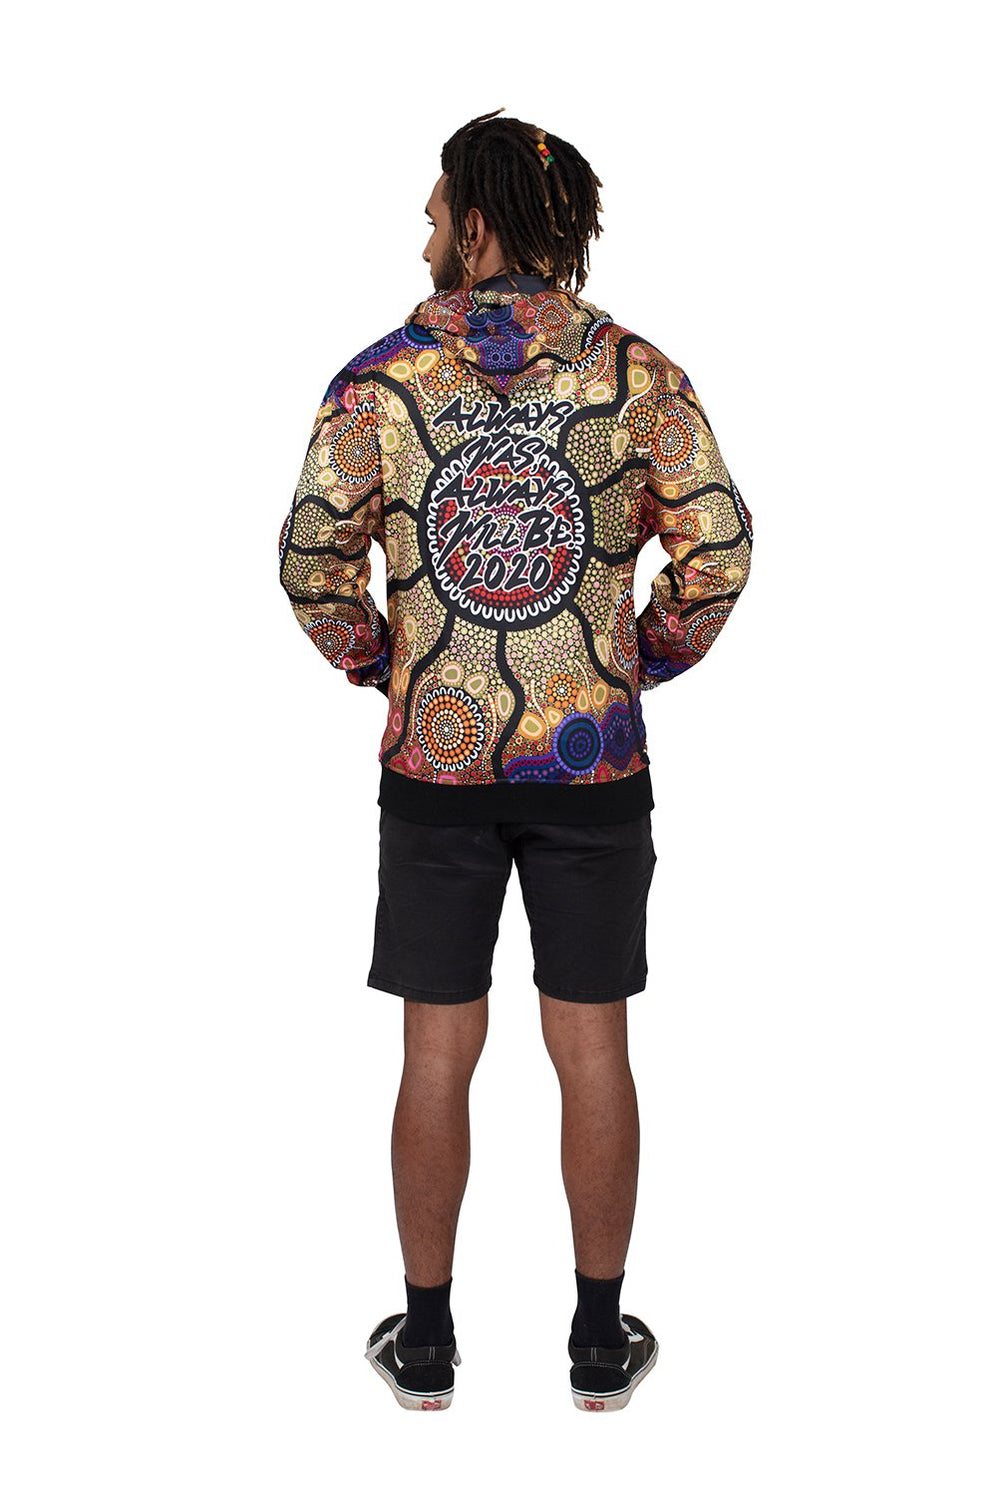 Yaliwunga Nguwa (Always Here) Men's Hoodies - NAIDOC 2020 - BW Tribal